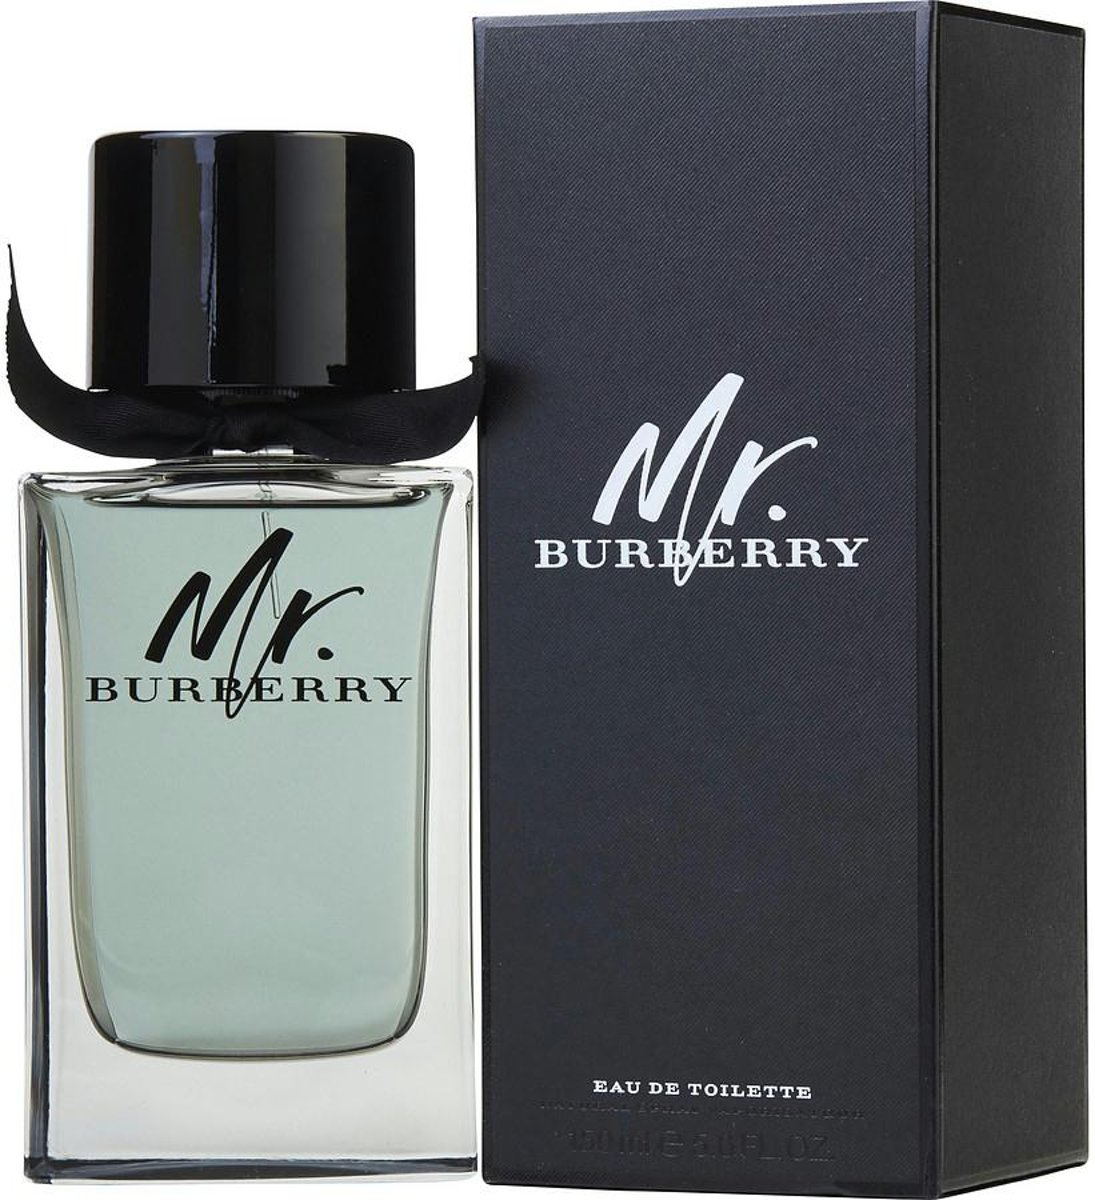 Burberry Mr Burberry - 150 ml - eau de toilette spray